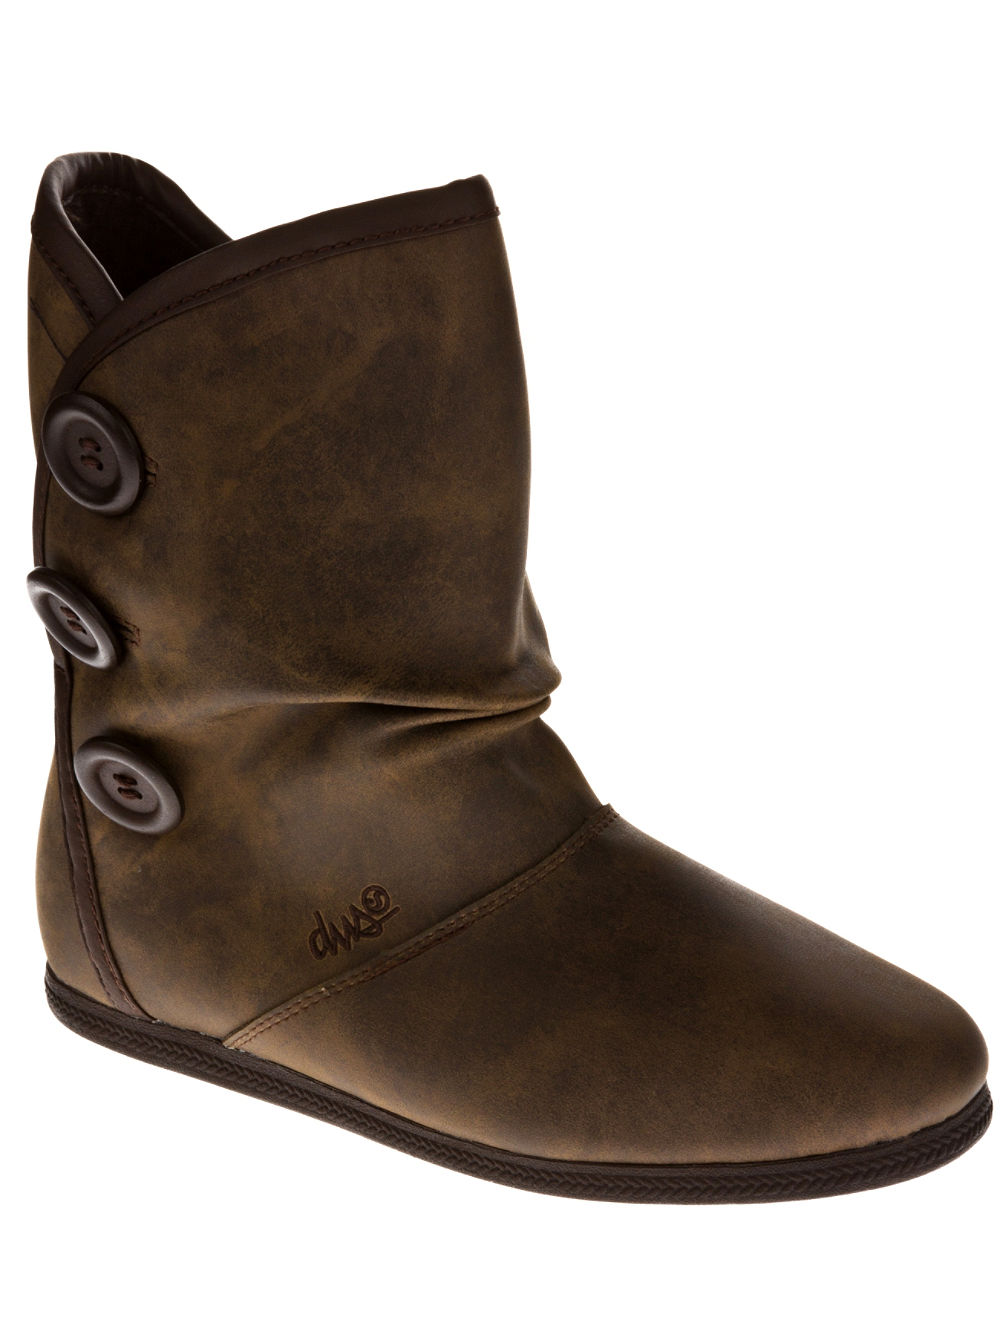 Shiloh Button Leather Boots Women